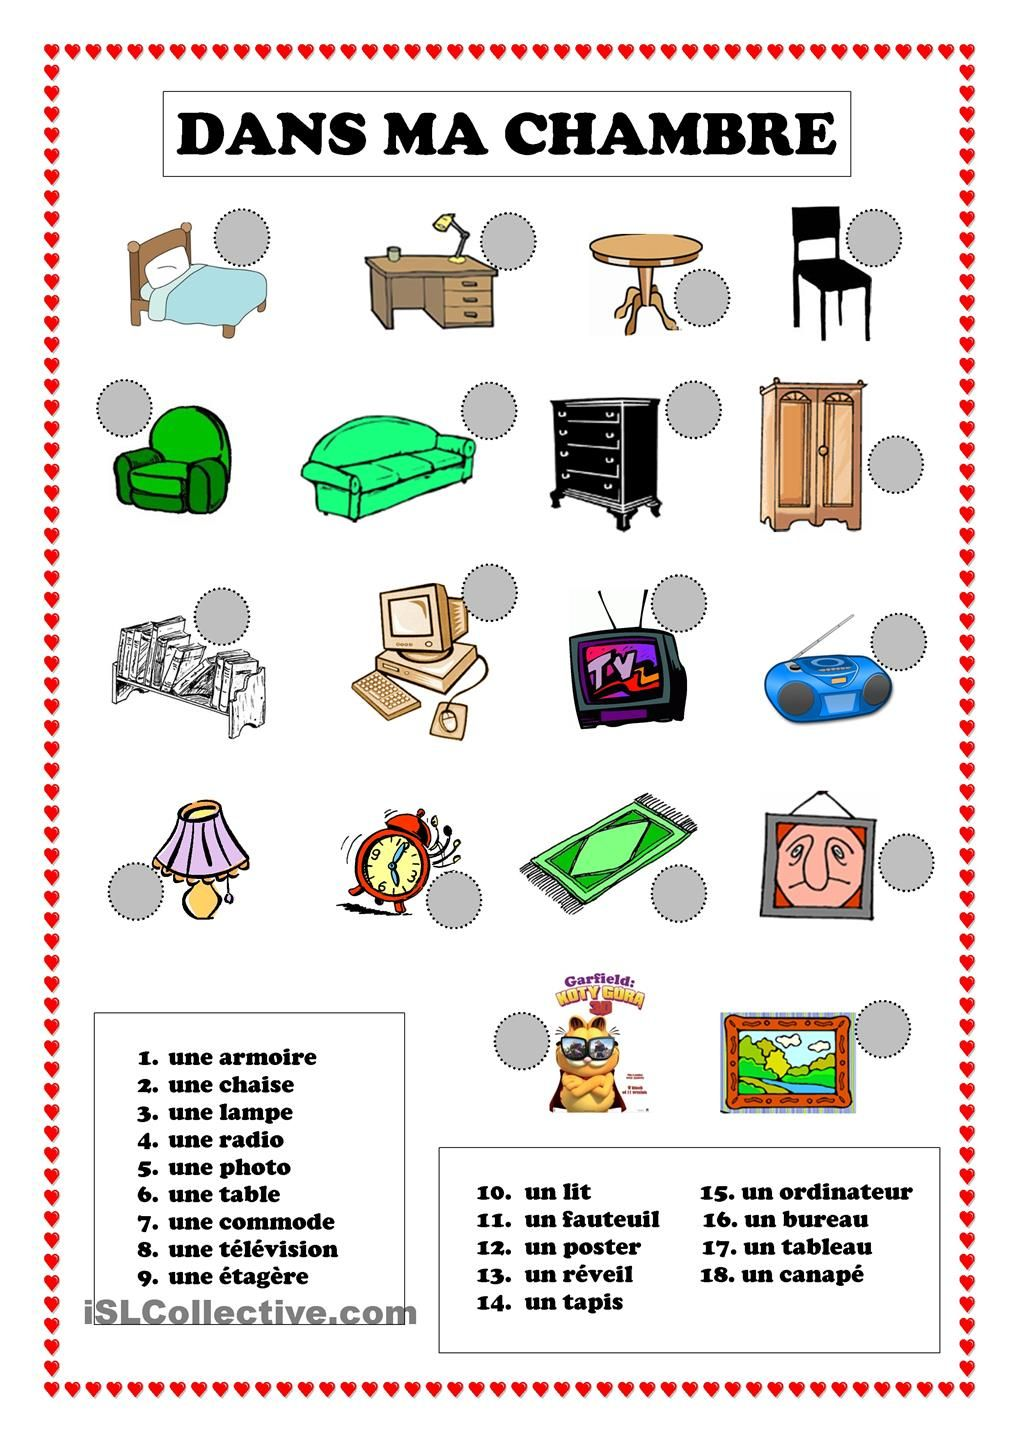 Dans ma chambre language learning french and teaching for Chambre in french